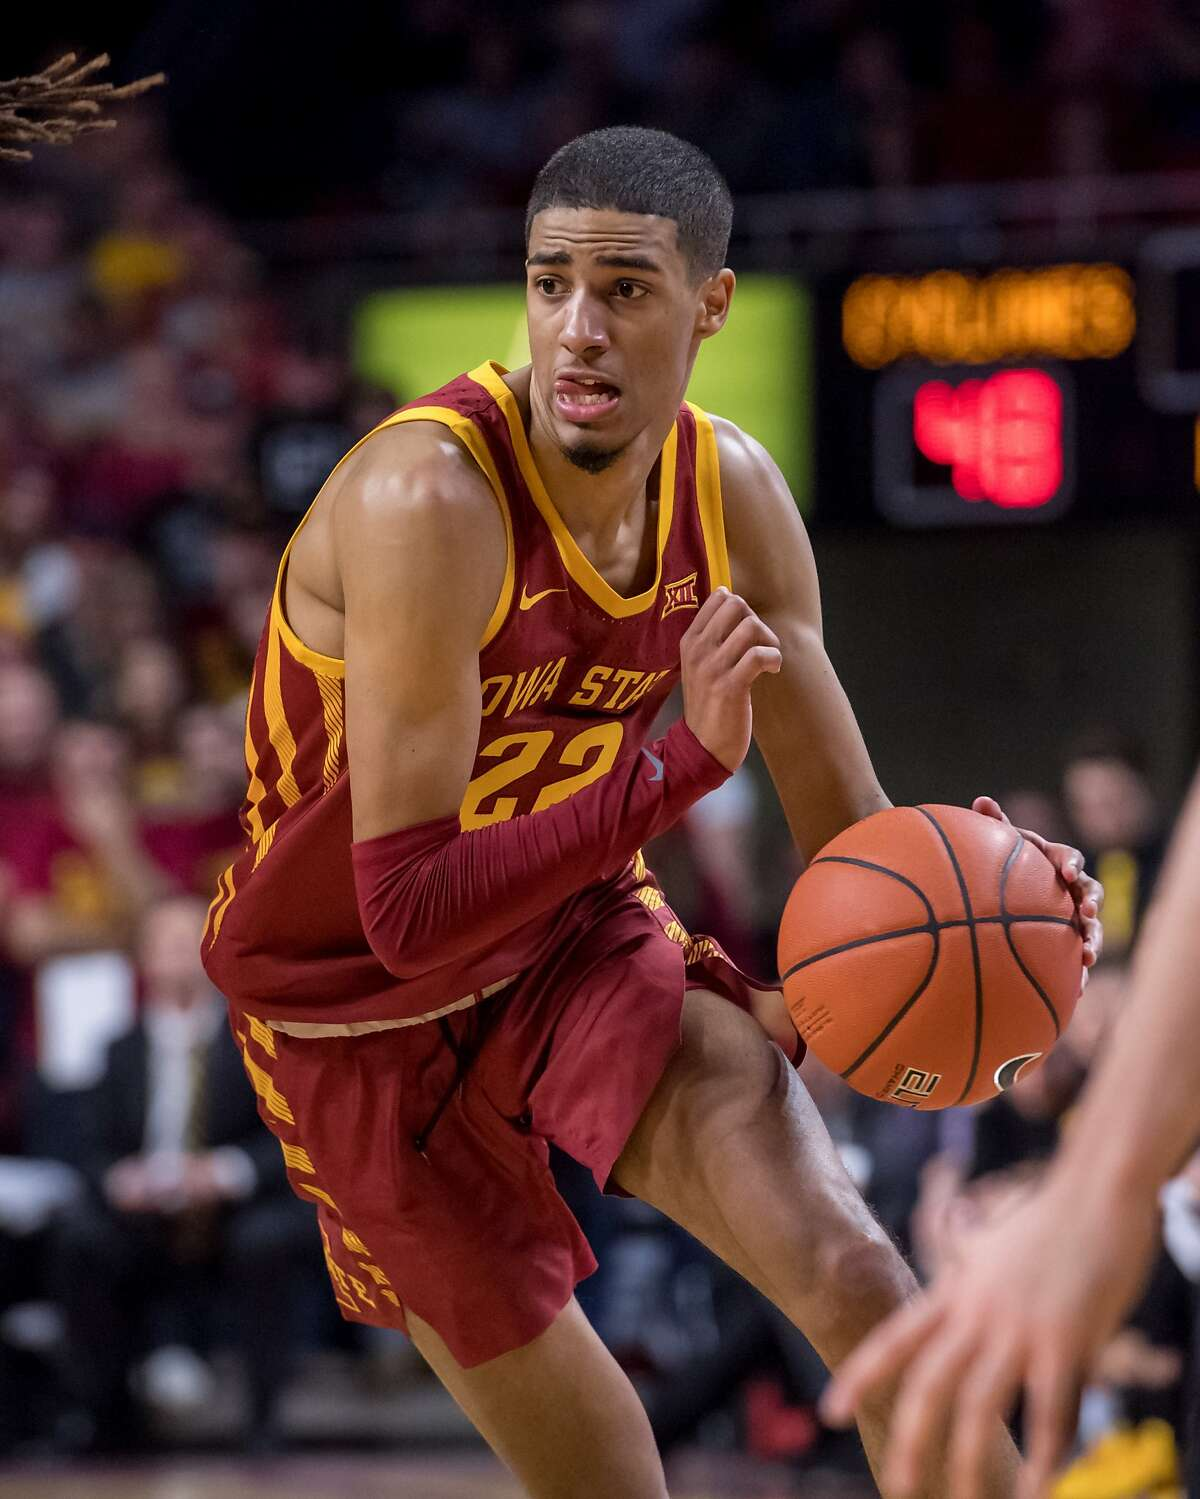 Tyrese Haliburton needed only two seasons at Iowa State to go from little-known recruit to likely NBA lottery pick.